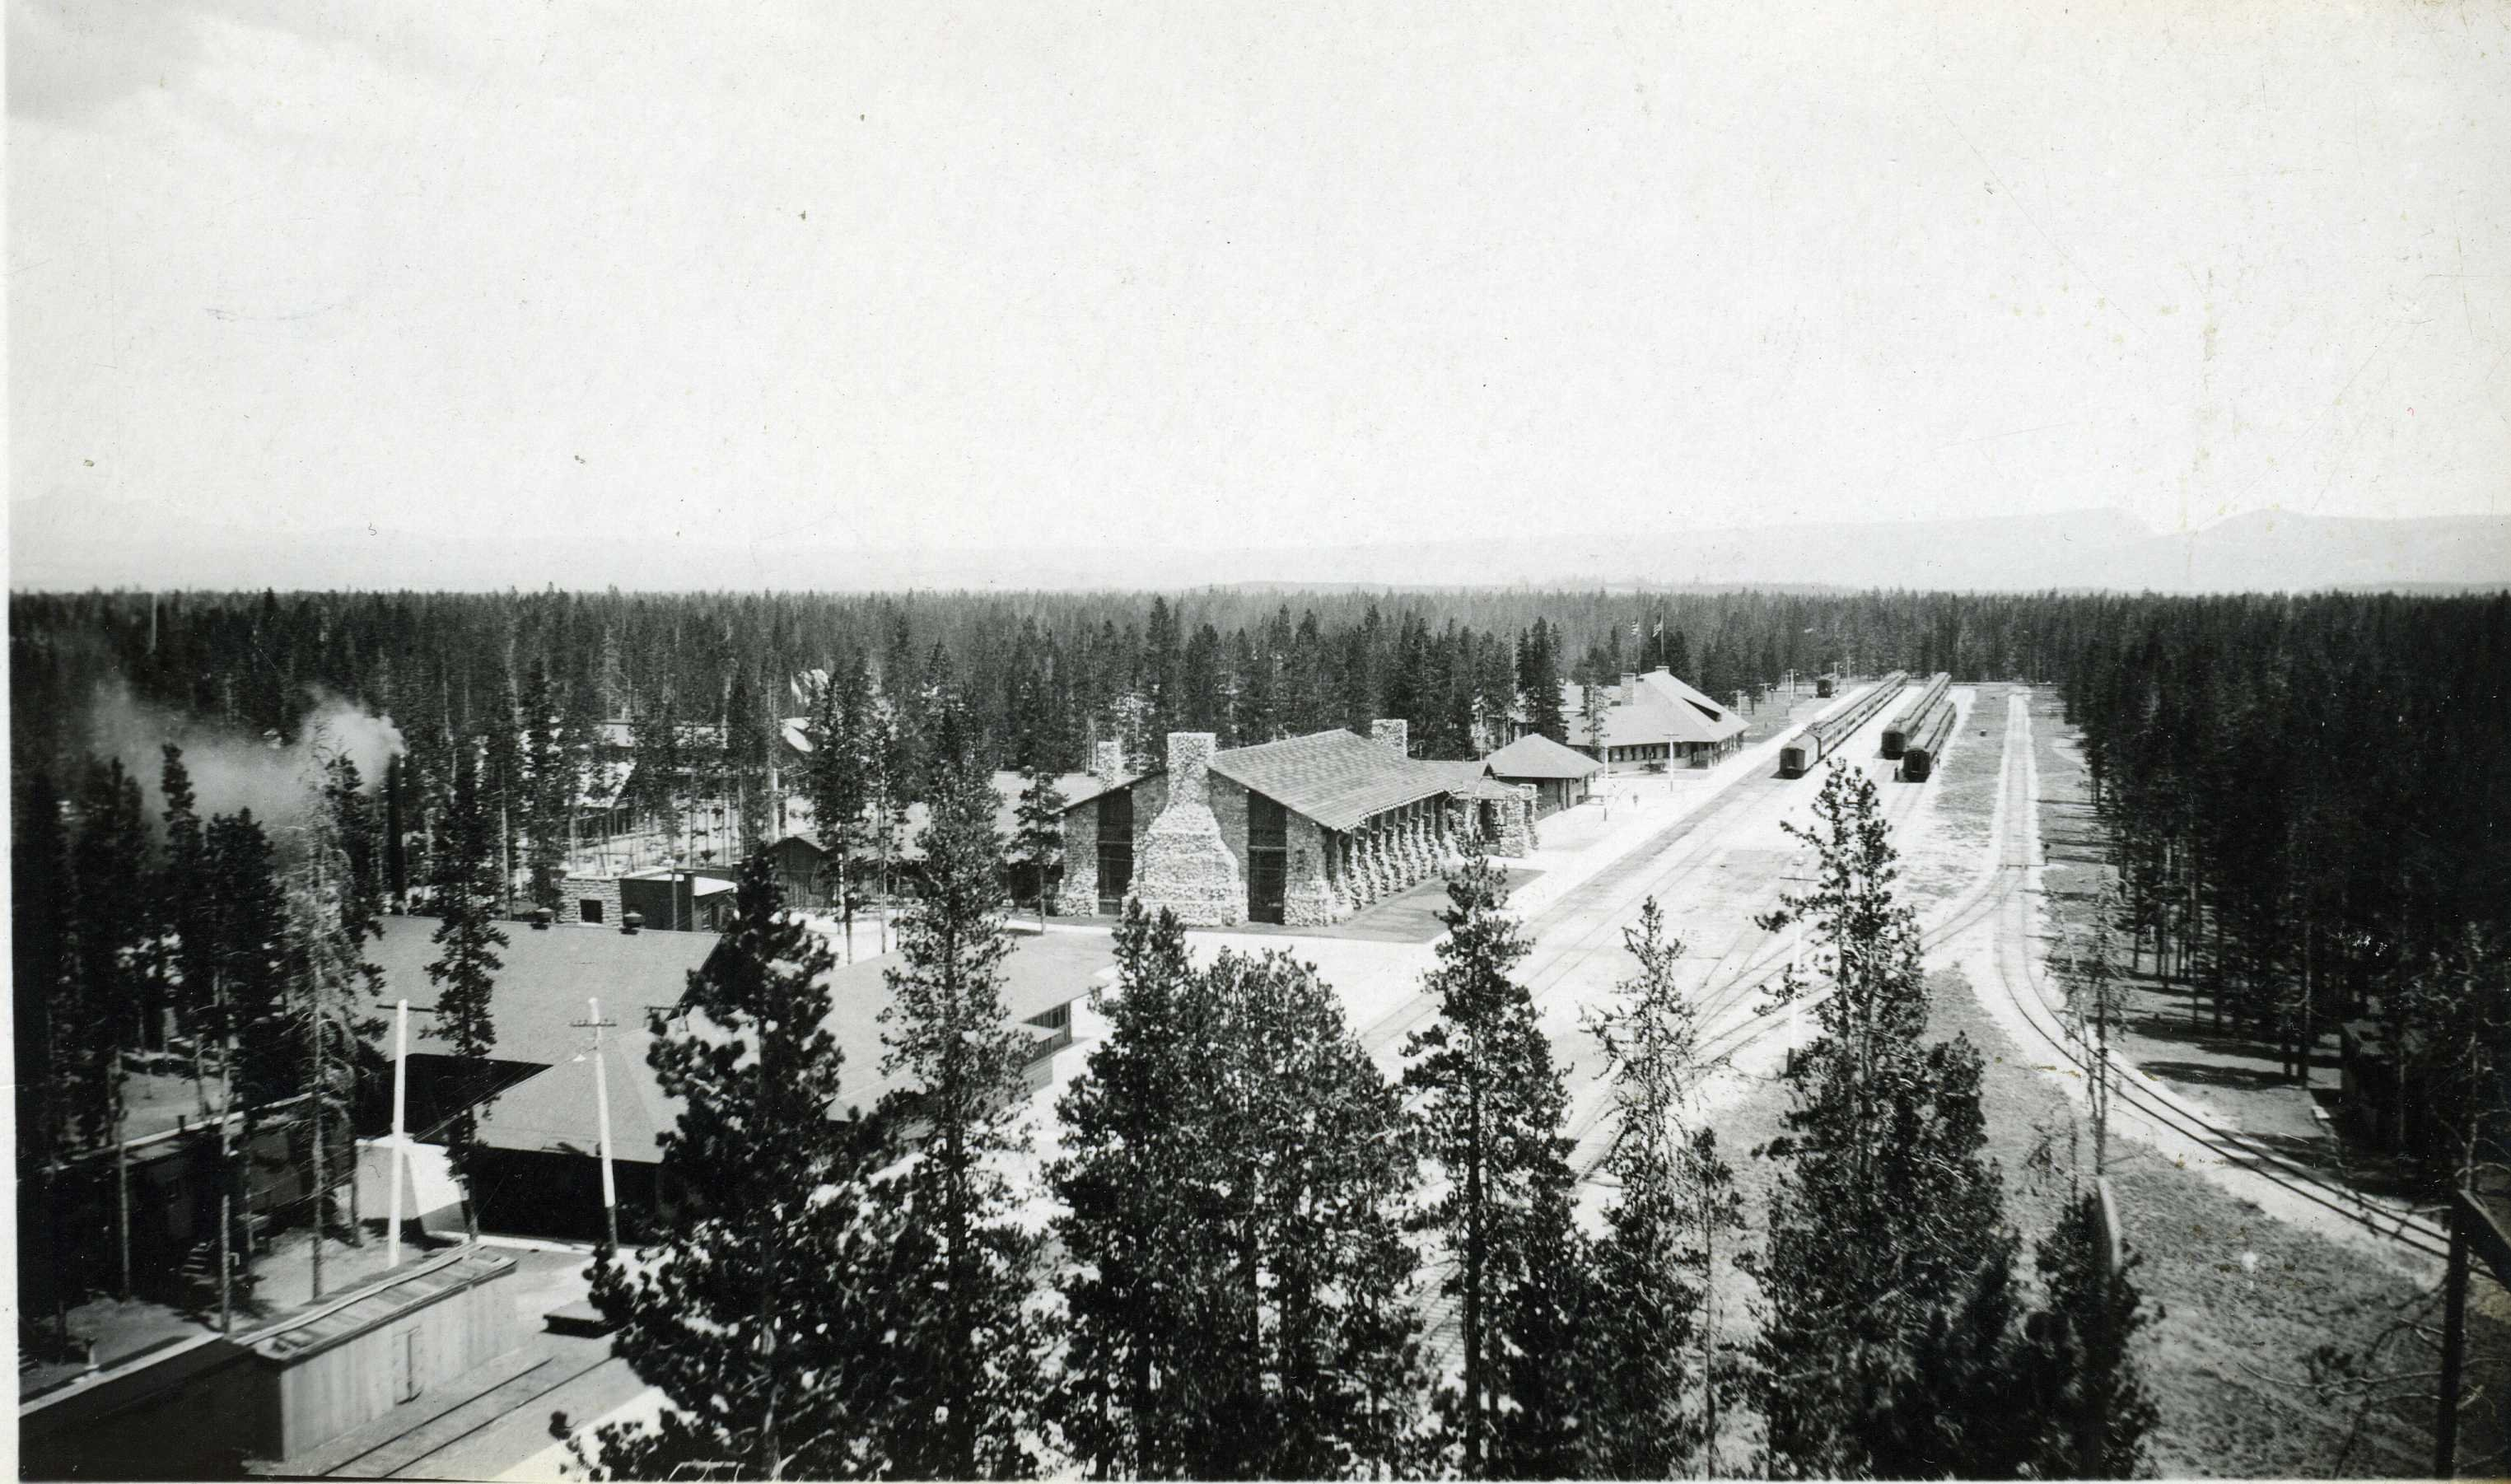 A view of the Union Pacific historic district showing the old housing facilities towards the bottom left of the photograph.